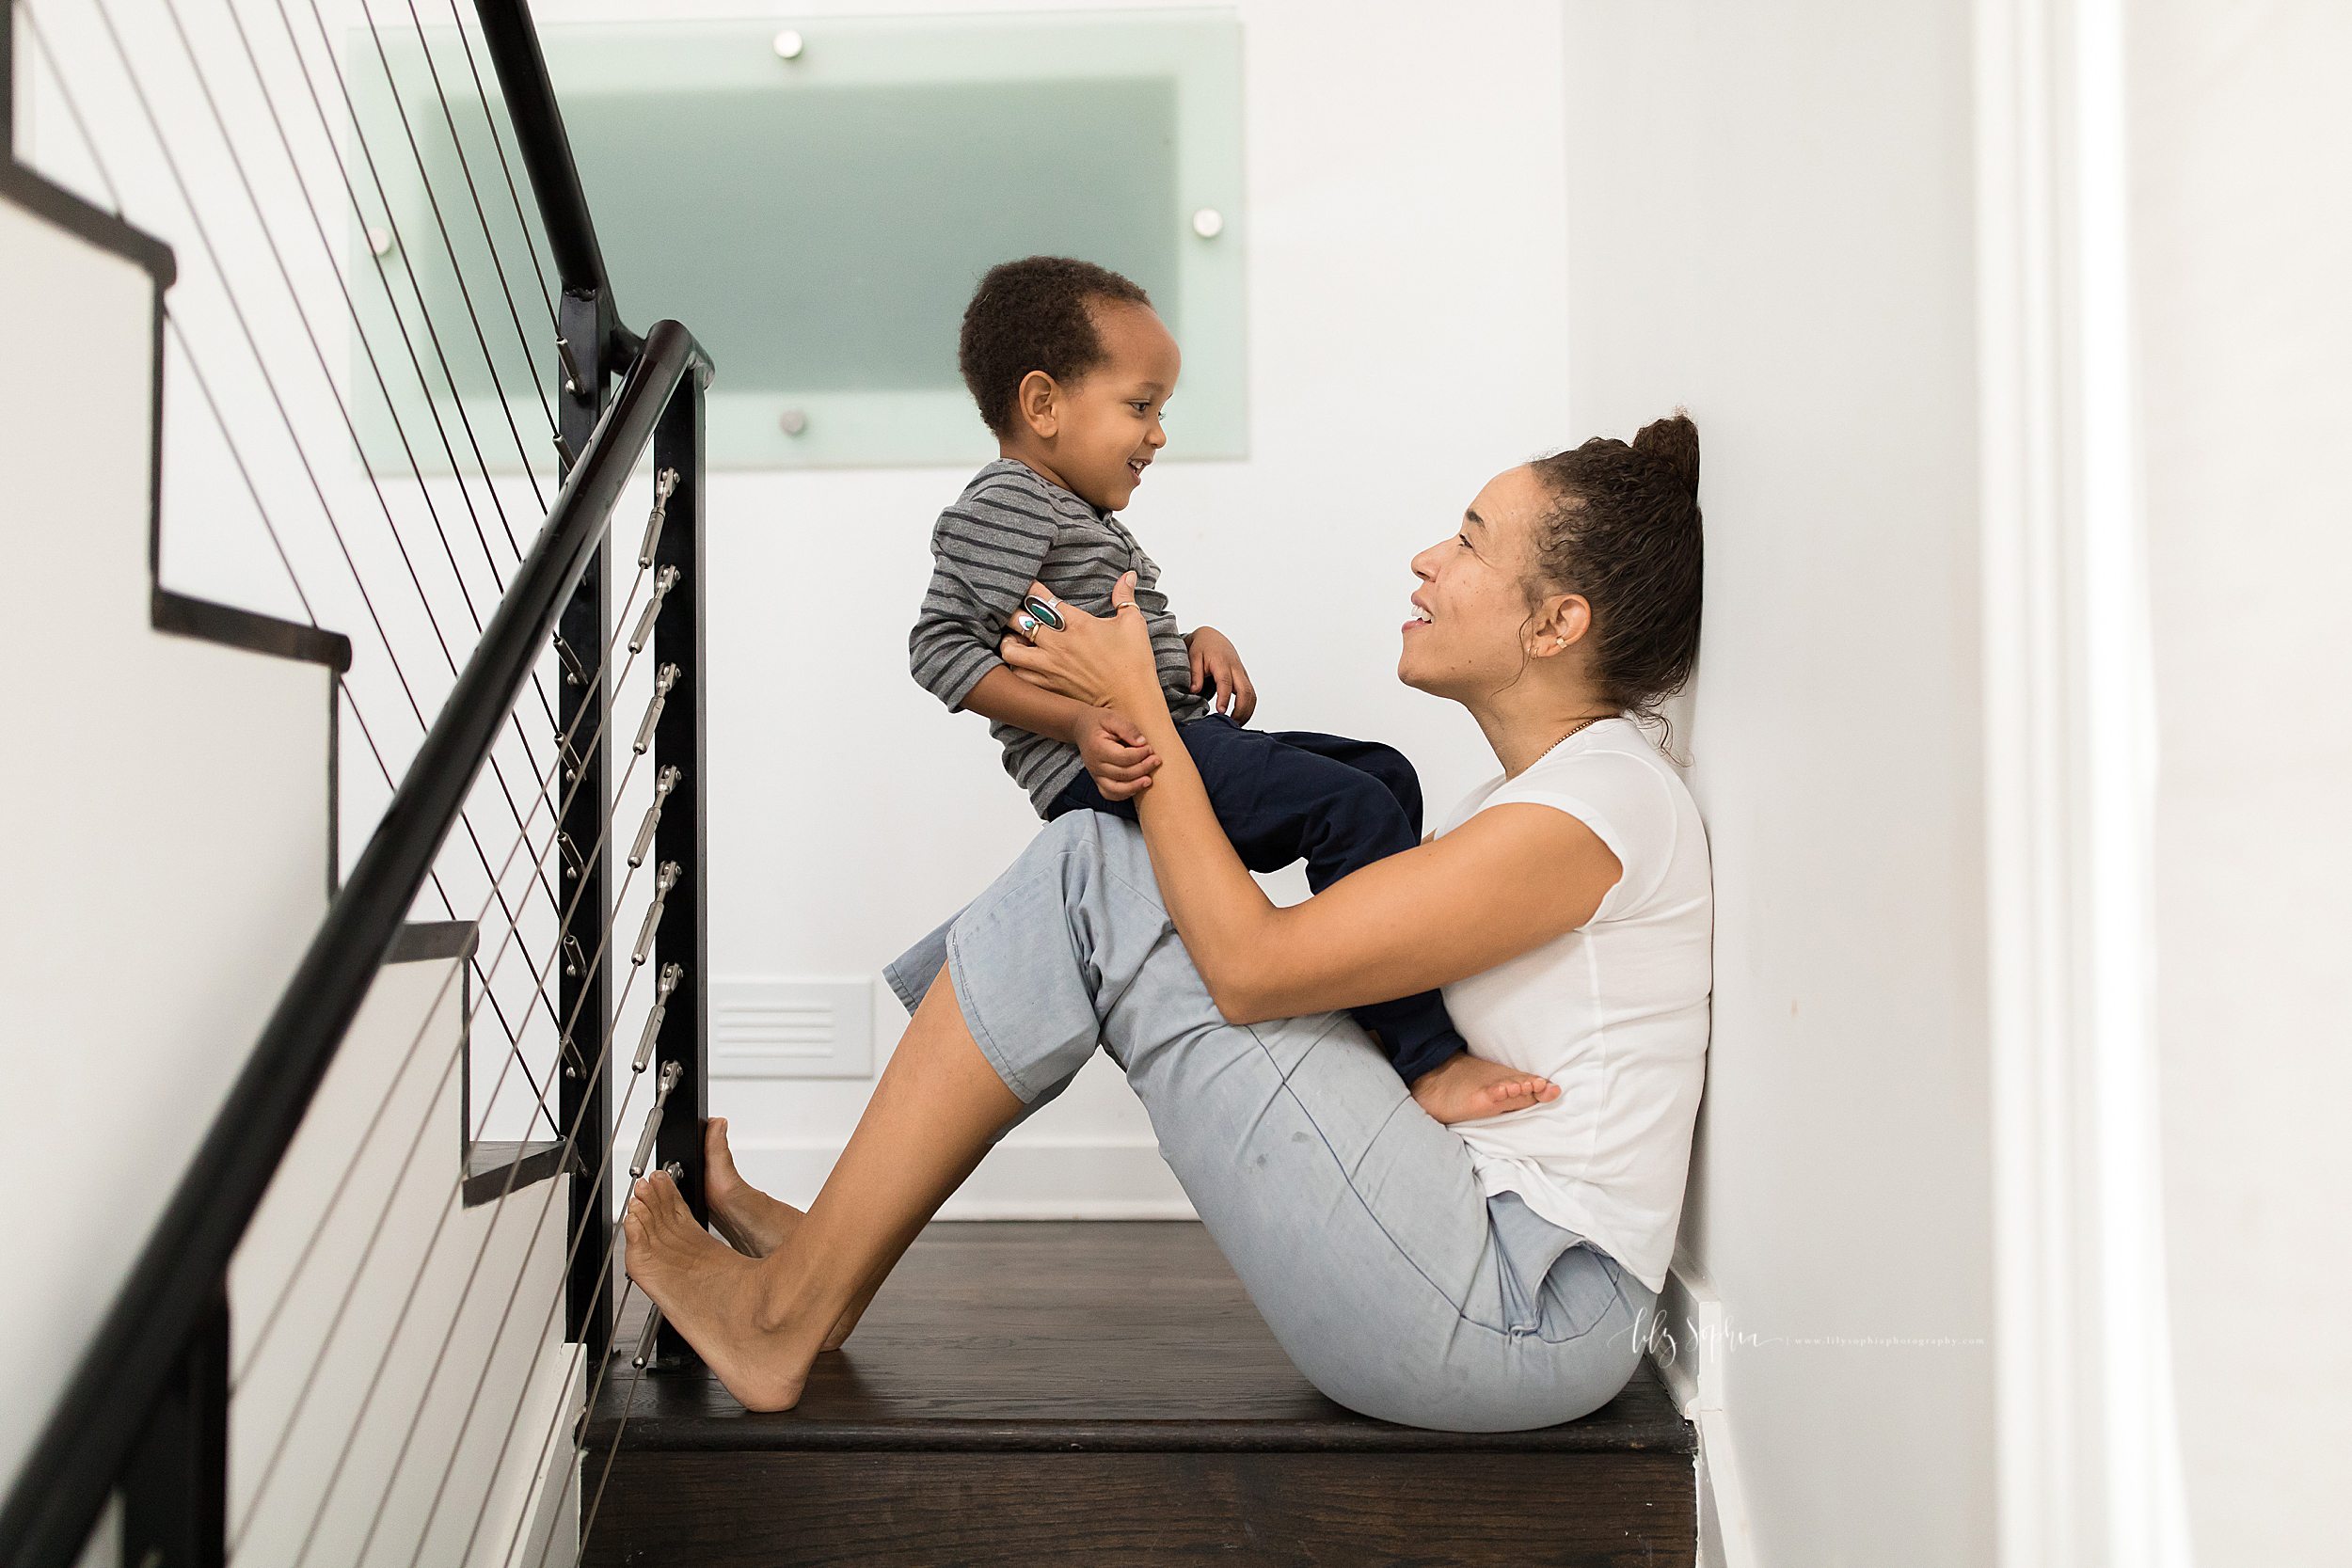 atlanta-midtown-inman-grant-park-beltline-old-fourth-ward-lily-sophia-photography-in-home-lifestyle-mommy-and-me-session-family-photographer-toddler-boy_0438.jpg